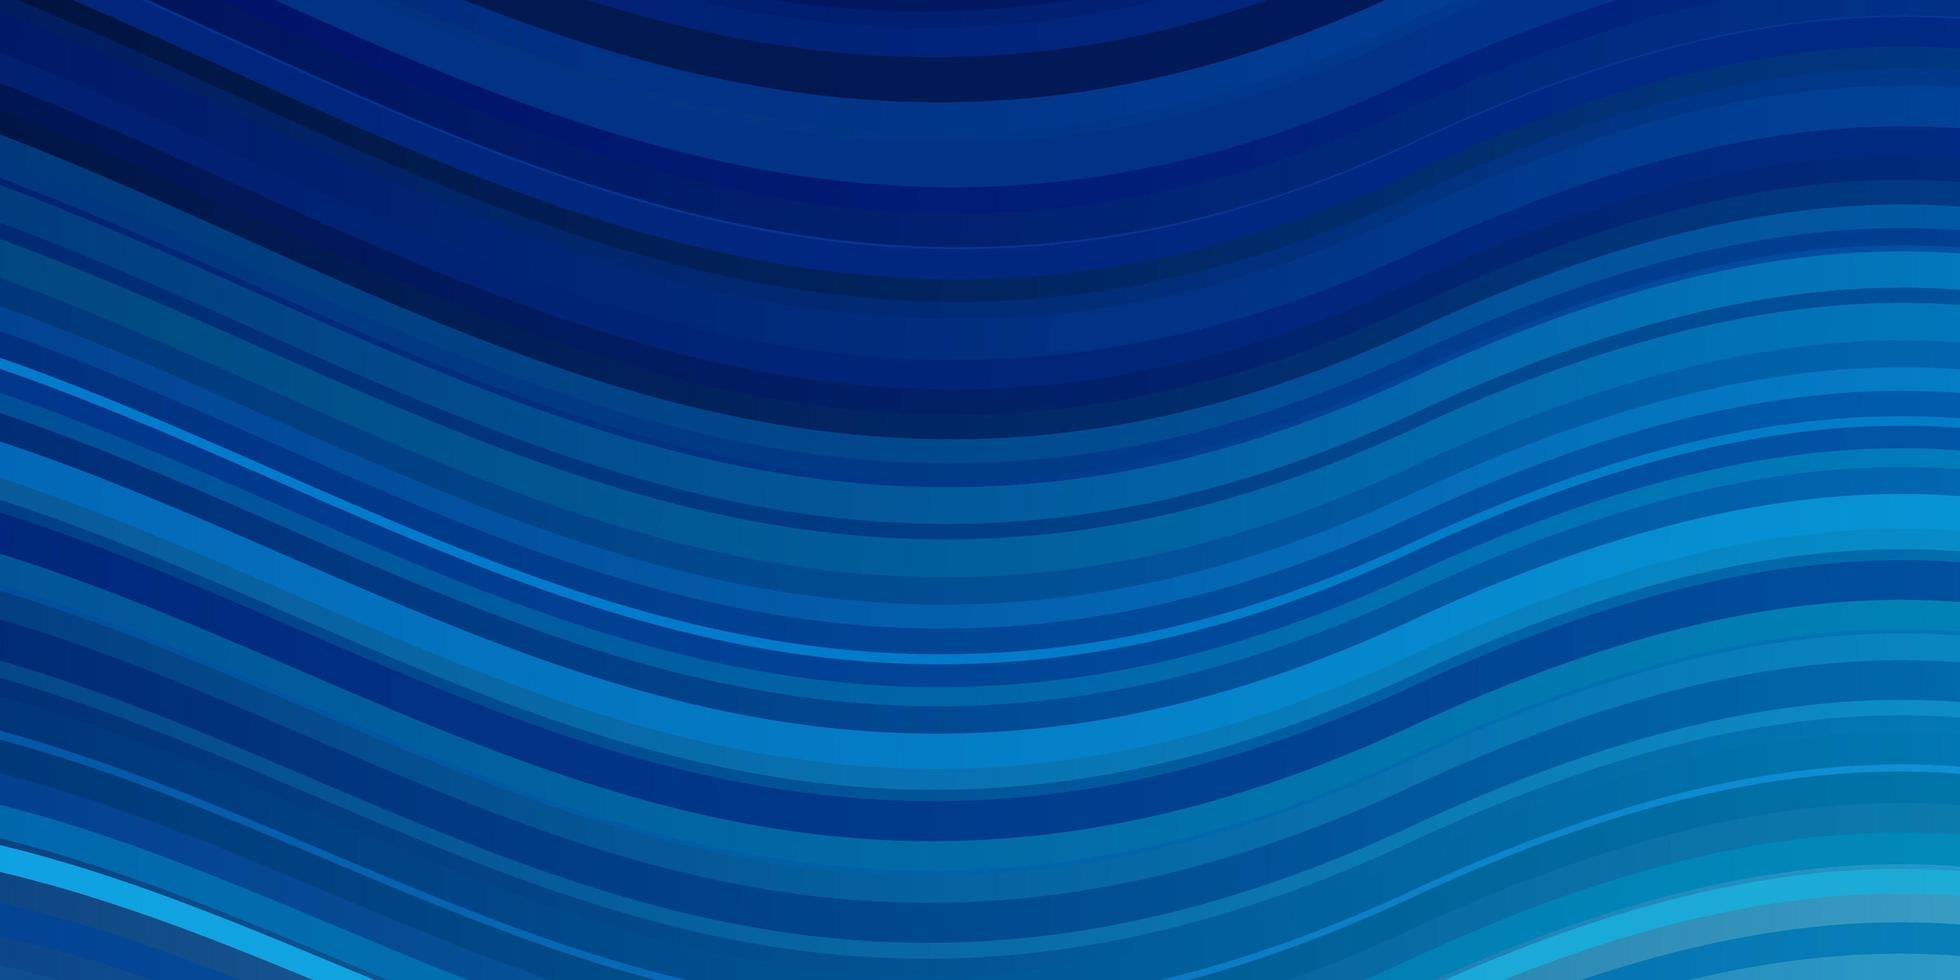 Light BLUE vector pattern with curved lines.